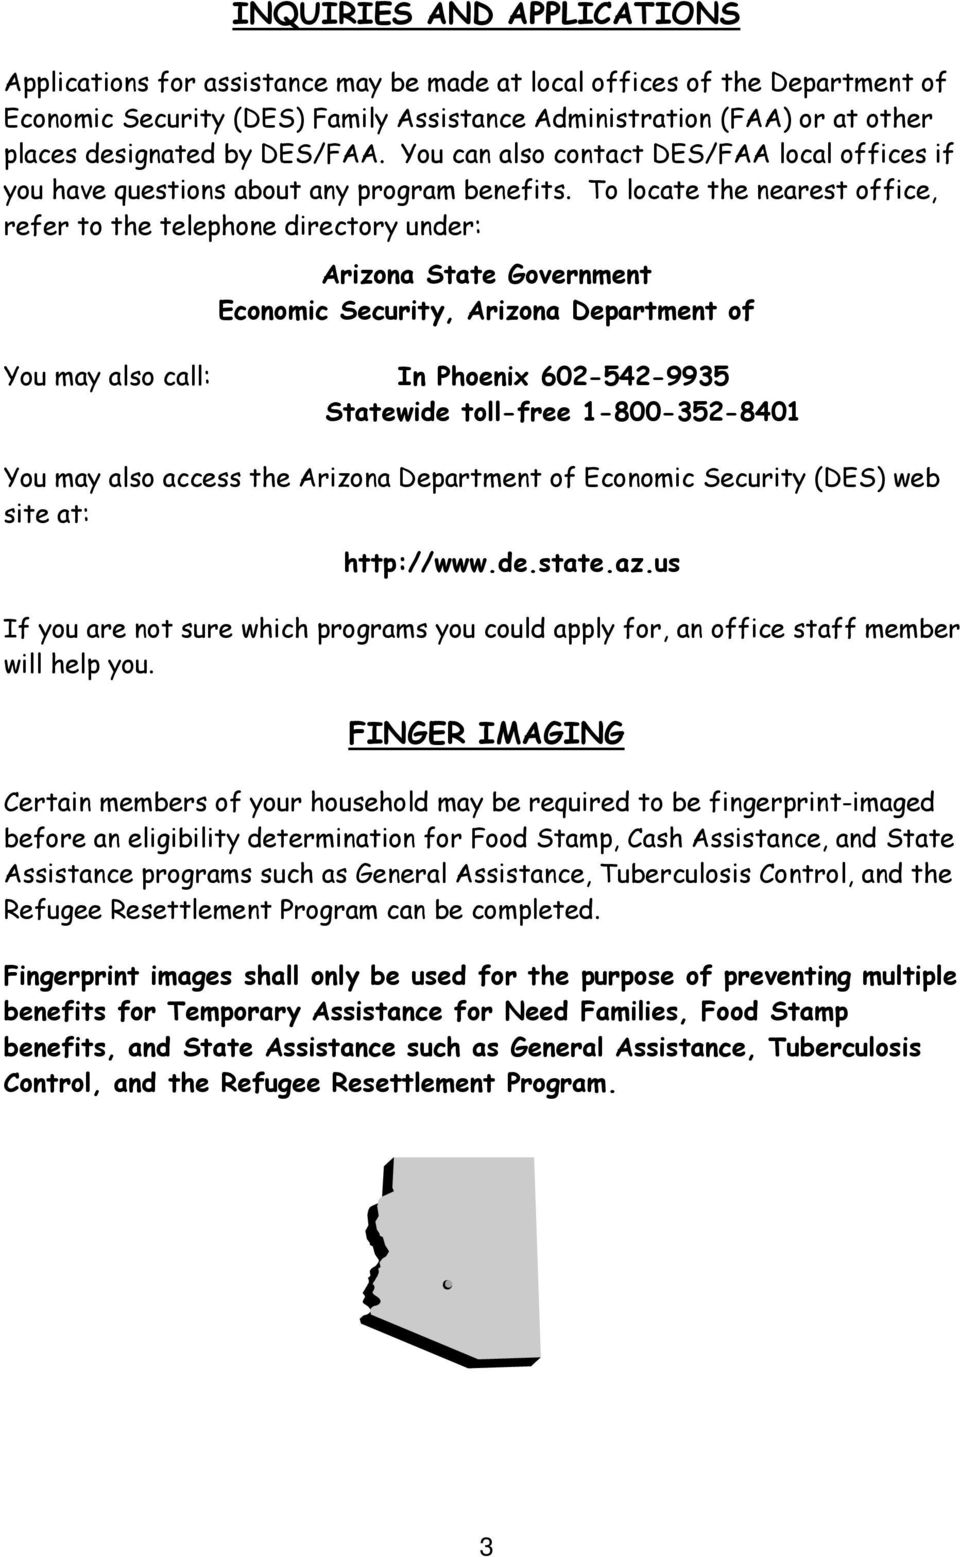 To locate the nearest office, refer to the telephone directory under: Arizona State Government Economic Security, Arizona Department of You may also call: In Phoenix 602-542-9935 Statewide toll-free